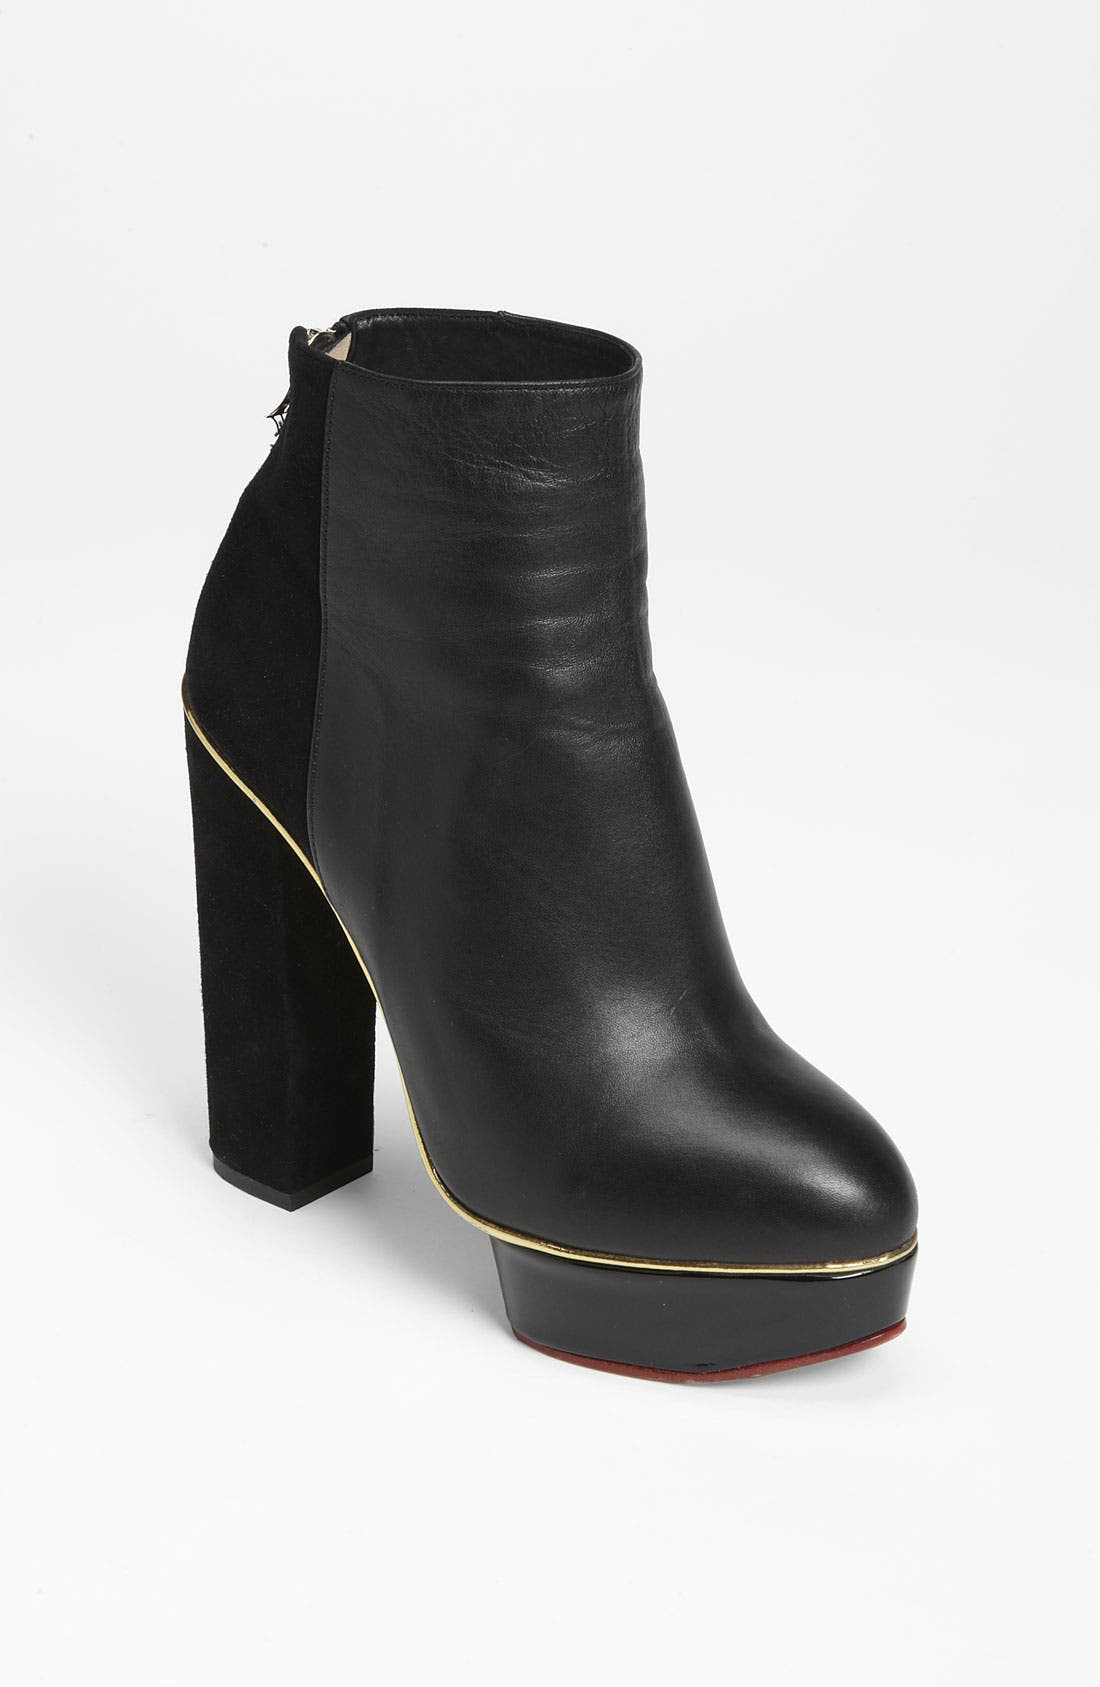 Alternate Image 1 Selected - Charlotte Olympia Ankle Bootie